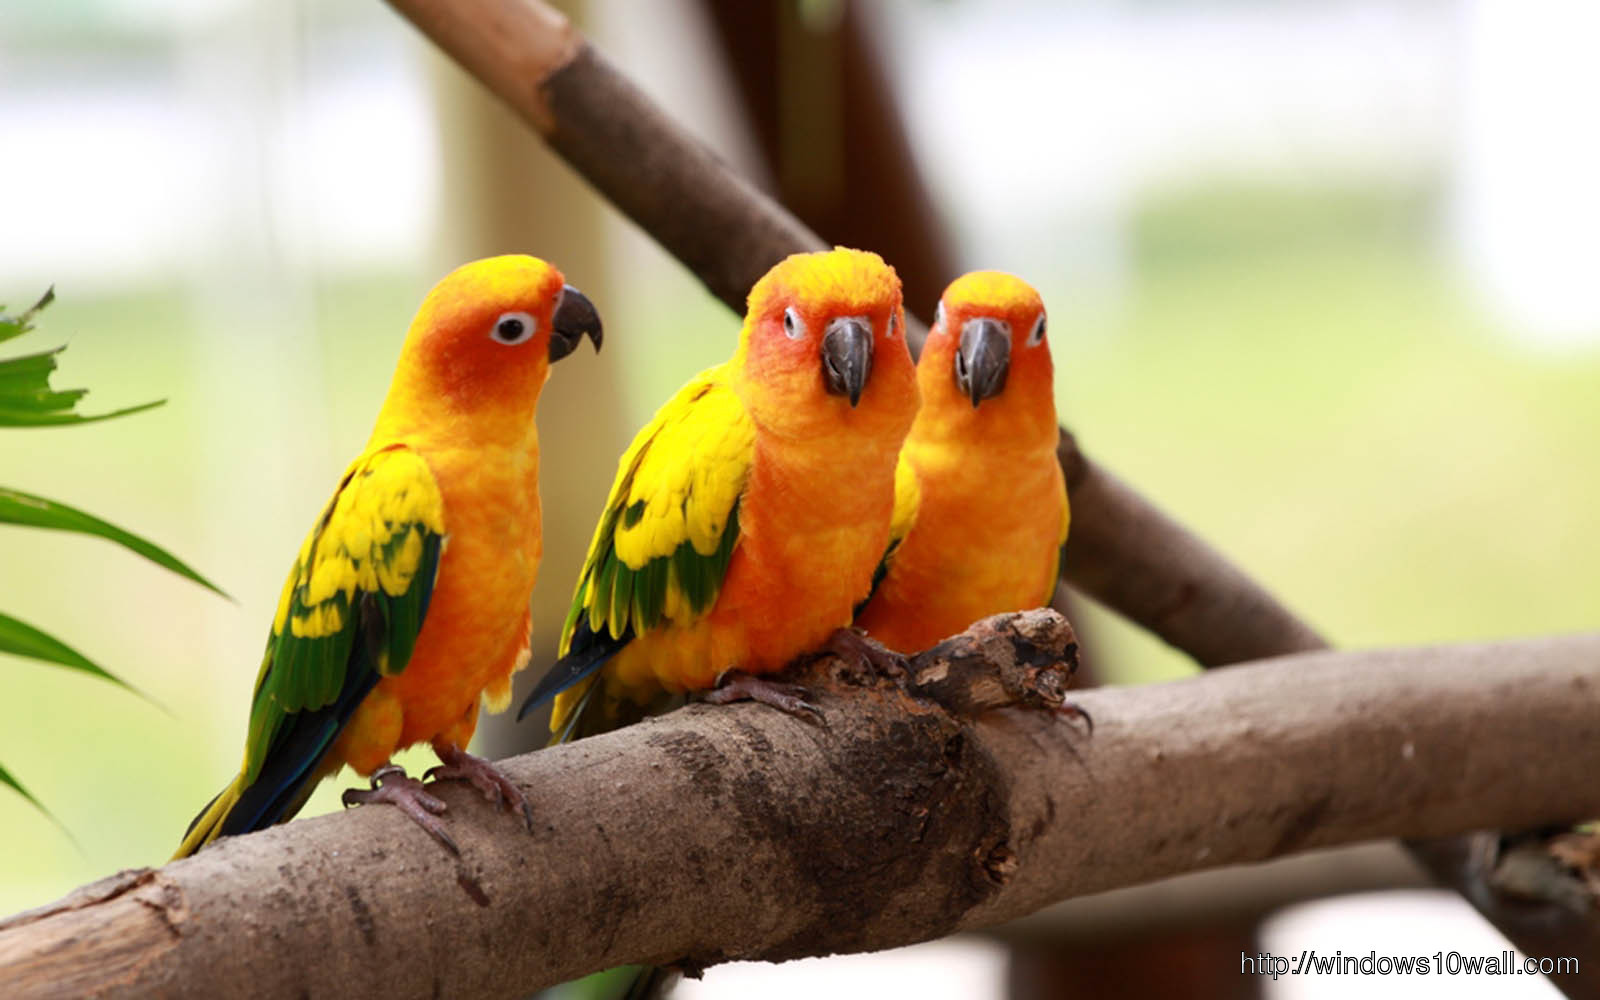 Love Birds Wallpaper In Hd : colorful Love Birds HD Free Wallpaper - windows 10 Wallpapers